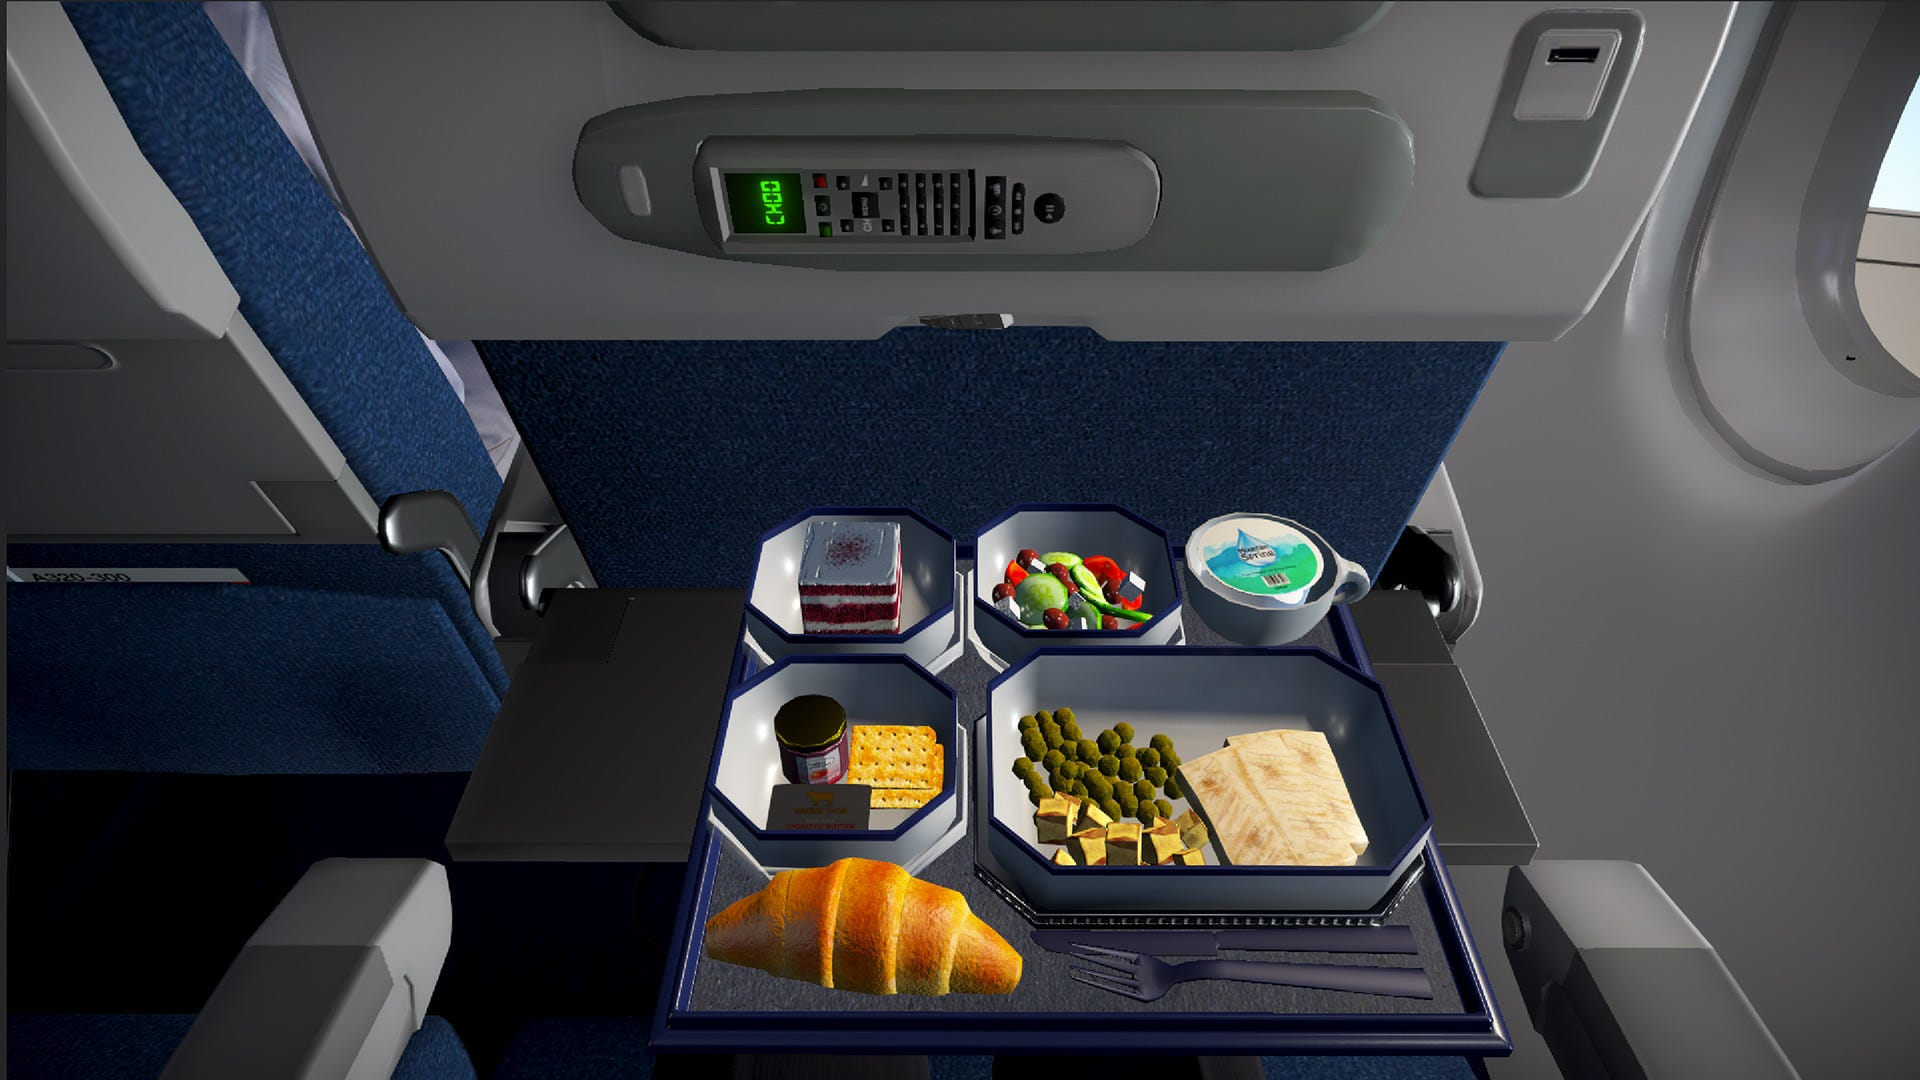 A video game view of a seatback try filled with gross looking food.